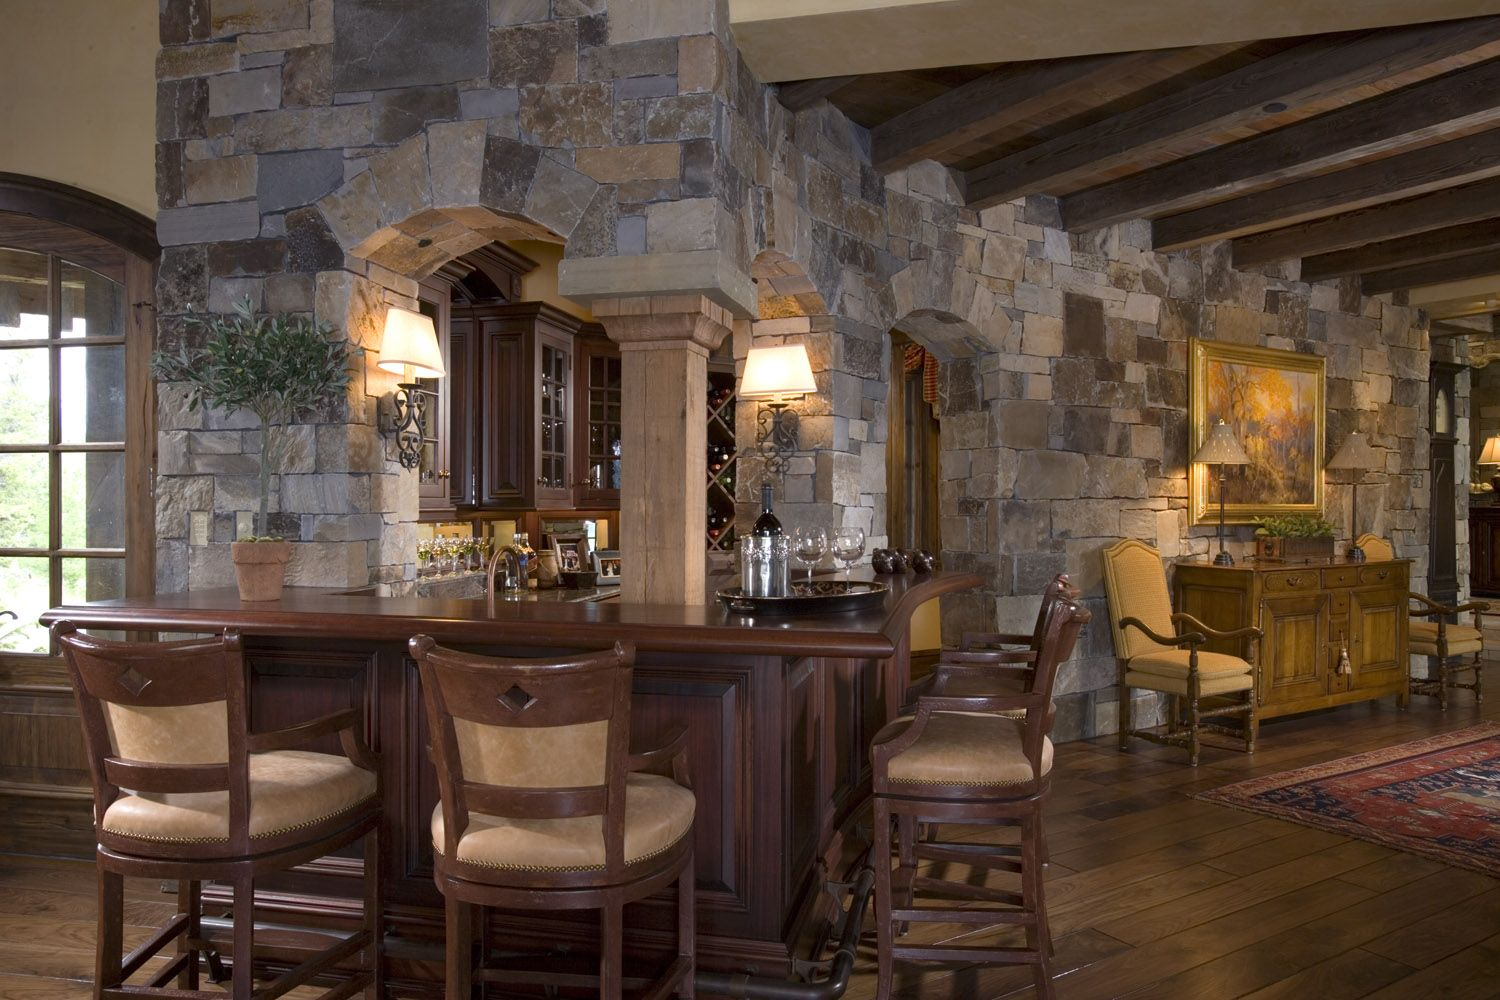 wood beam ceiling wood floors stone wetbar mountain lodge in wood beam ceiling wood floors stone wetbar mountain lodge in yellowstone club designed by locati interiors wine rooms and wet bars pinterest